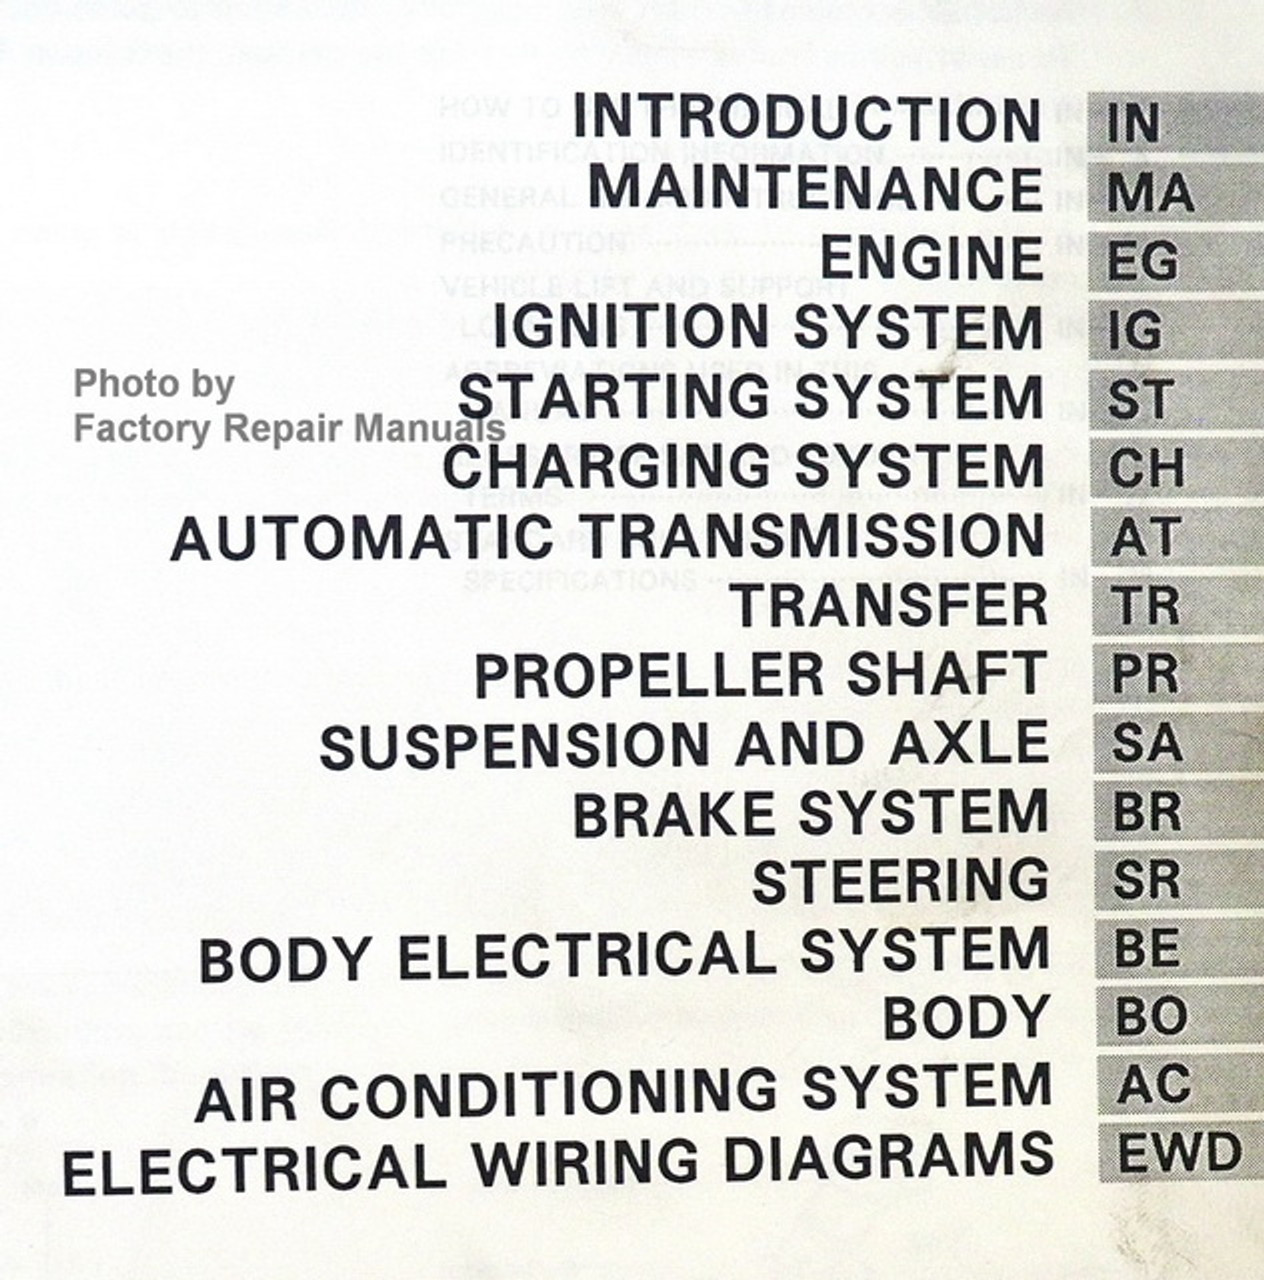 Sc Wiring Diagram on 1994 camry wiring diagram, 1994 4runner wiring diagram, 1994 corolla wiring diagram, 1994 mustang wiring diagram, 1994 300zx wiring diagram, 1994 civic wiring diagram, 1994 land cruiser wiring diagram, 1994 supra wiring diagram, 1994 xj12 wiring diagram,